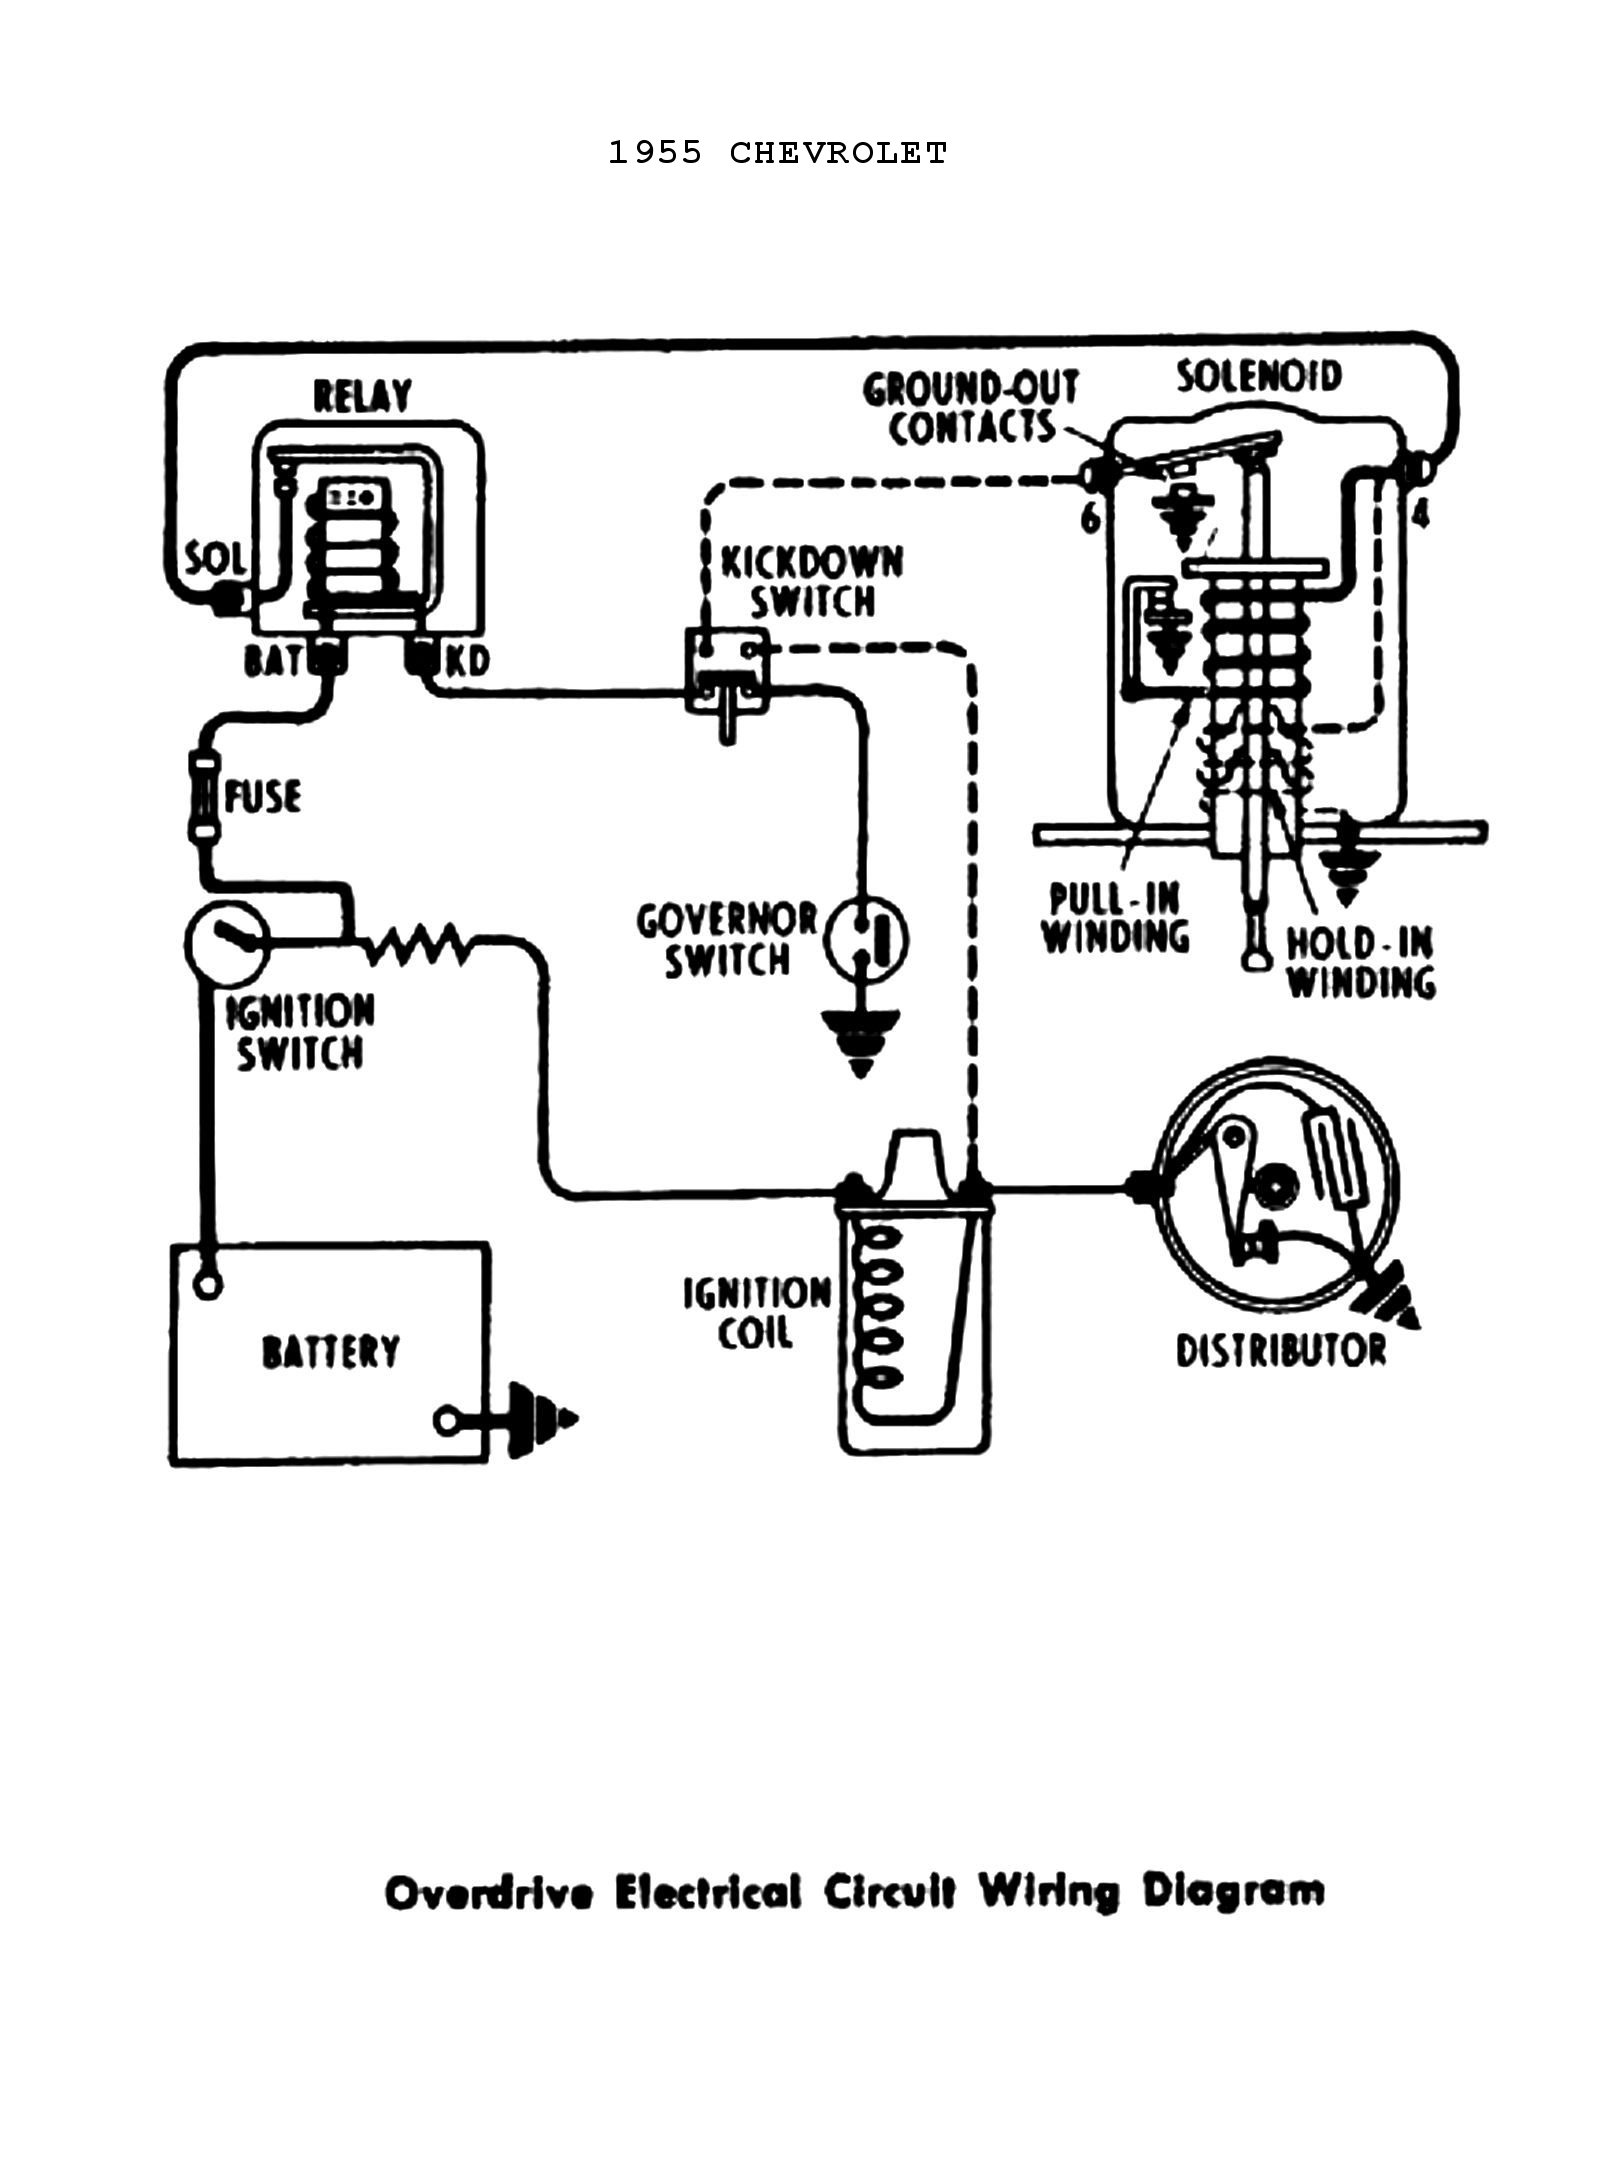 1955 Chevrolet Heater Switch Wiring Diagram likewise Chevrolet C10 Wiring Diagram furthermore 1955 Chevy Bel Air Headlight Wiring Diagram also 57 Chevy Starter Wiring Diagram in addition 1970 Chevy Blazer Wiring Diagram. on 1955 chevy ignition switch wiring diagram